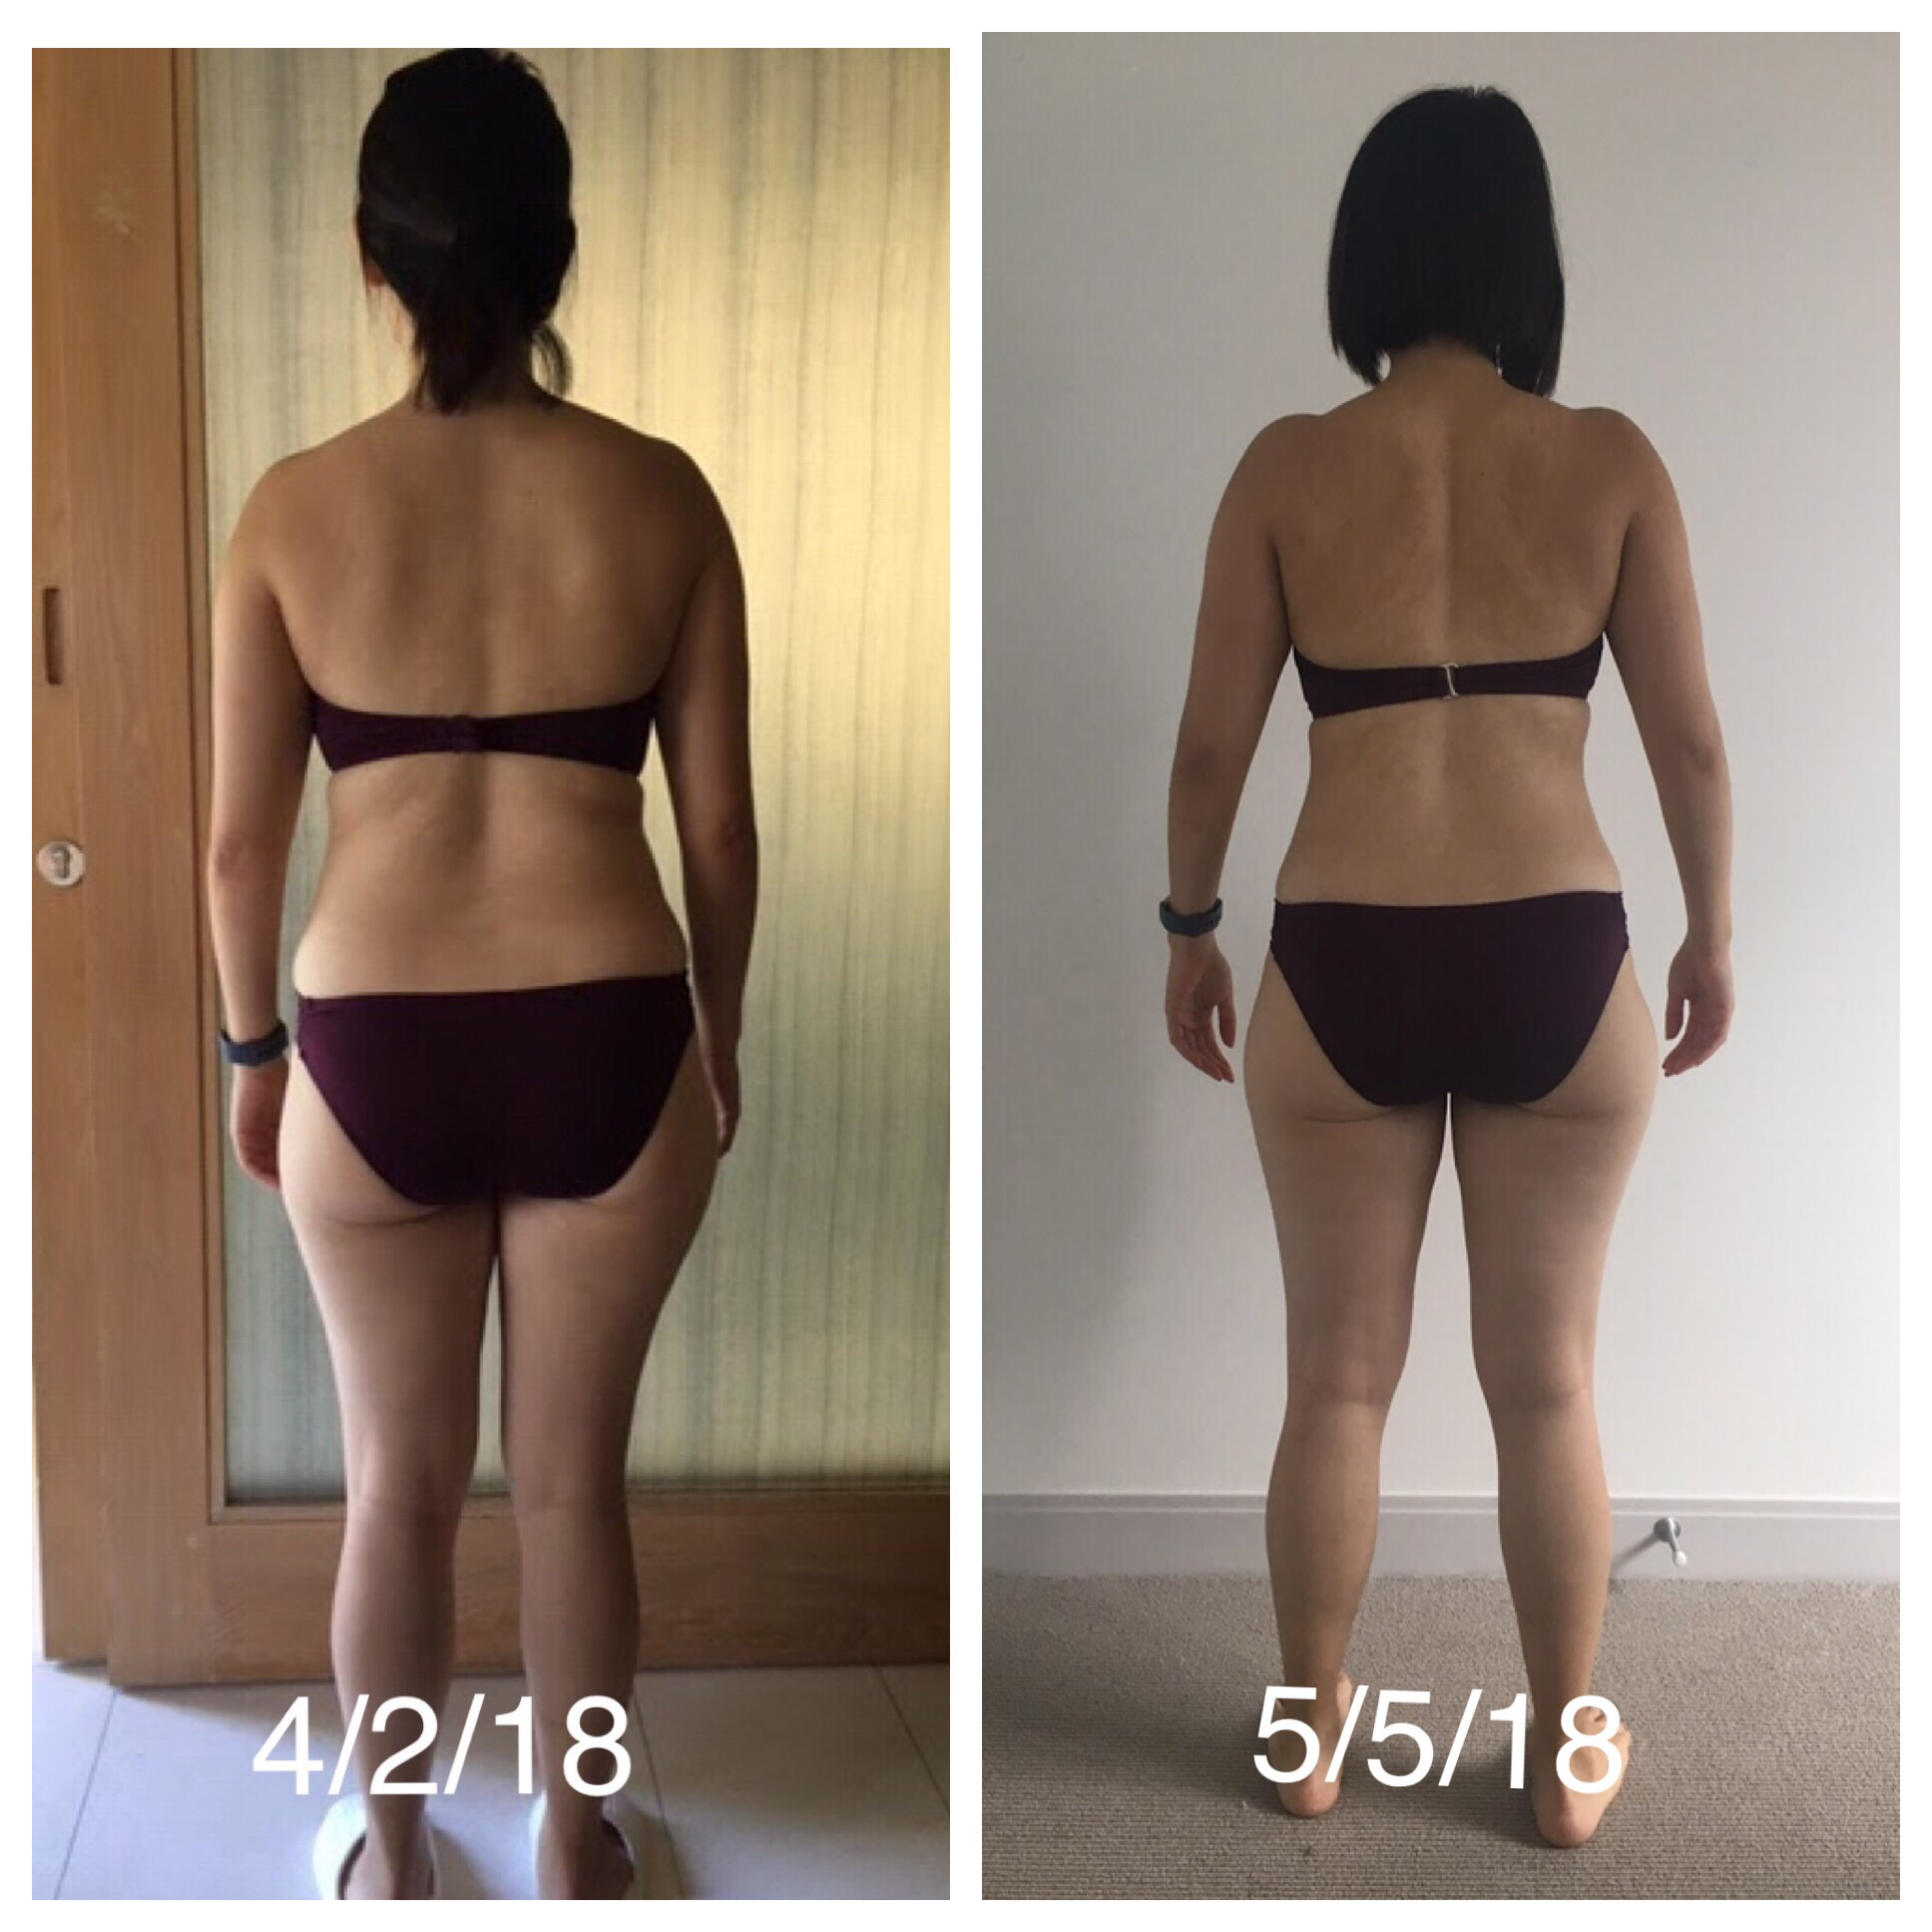 Training/Food - Weight-trained 3-5 times a week. Logged all foods on My Fitness Pal. Sarah really got into cooking and learned that eating veggies in the morning was a great way to get fiber in without supplements and a great start to the day! Her body composition changed without changing the scale!